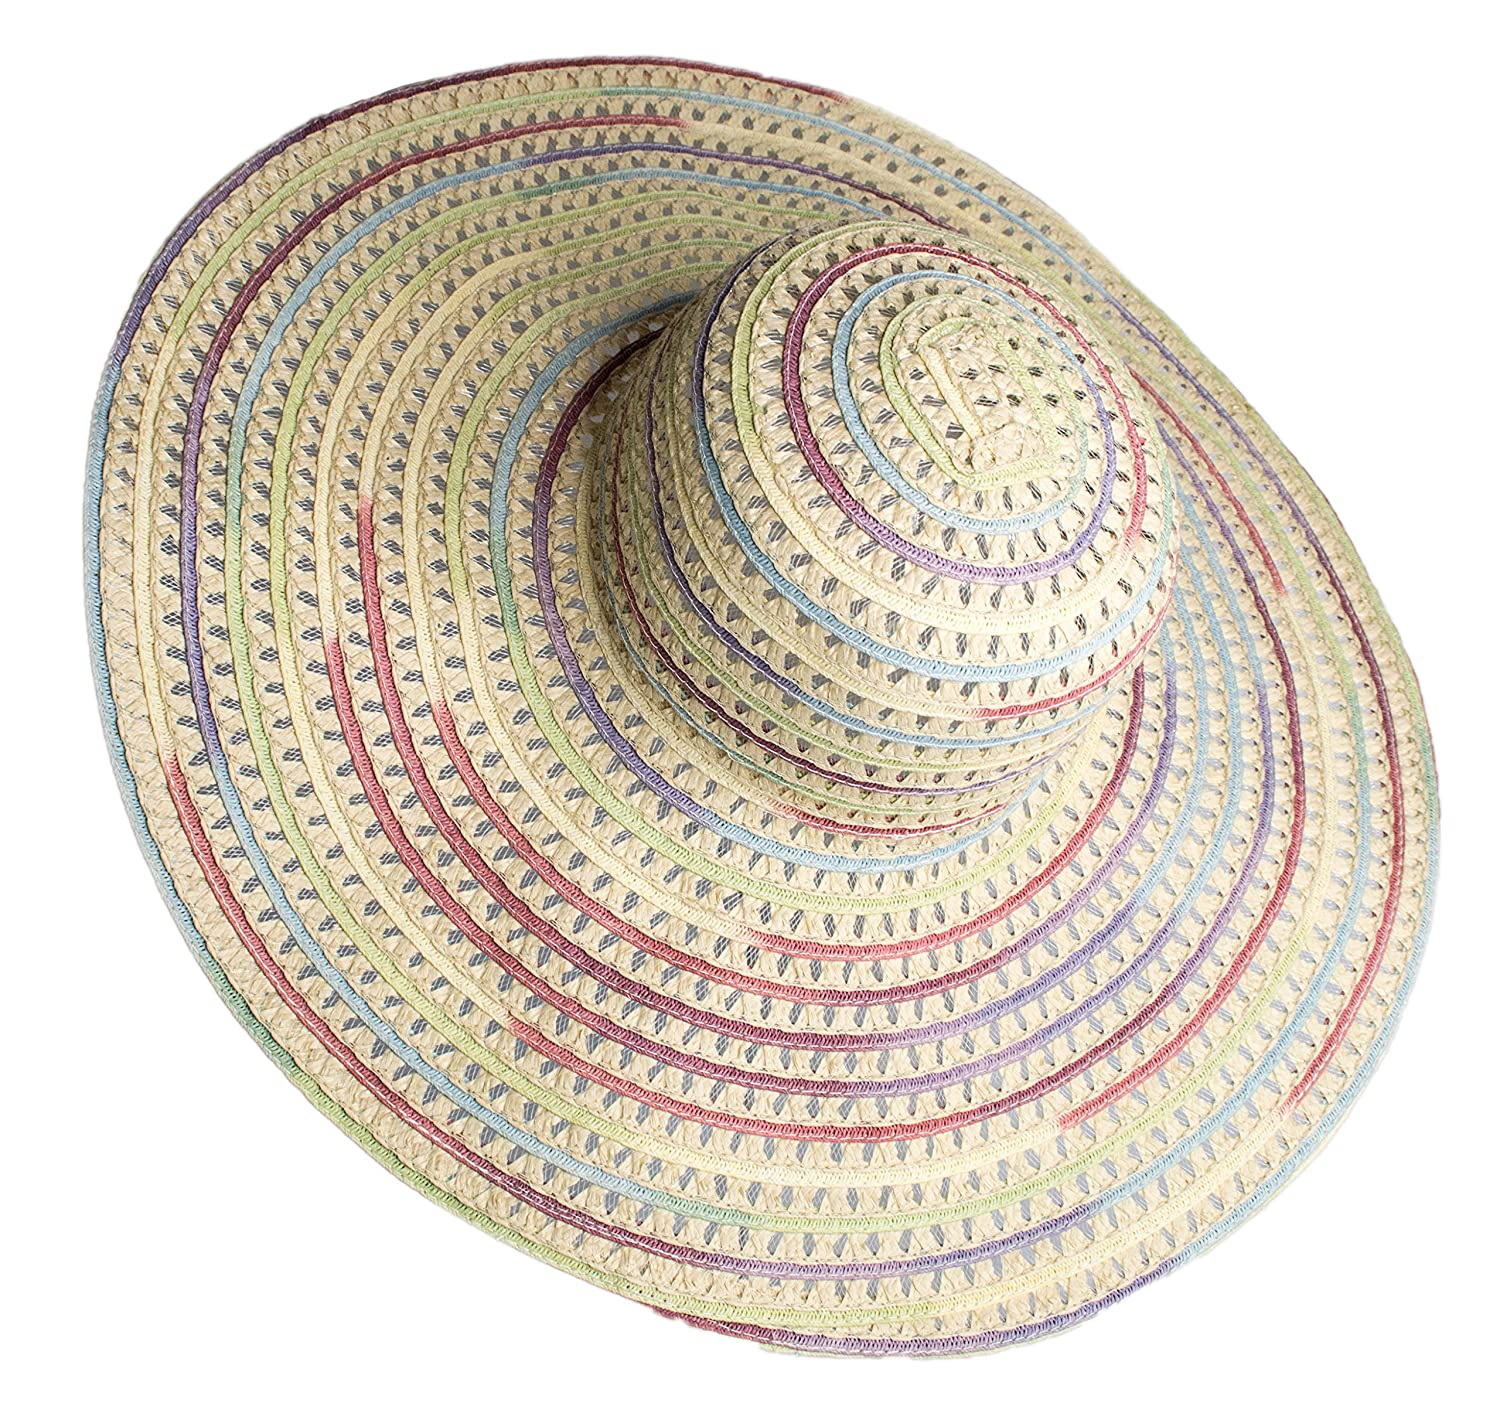 Rising Phoenix Industries Extra Wide Brim Floppy Rainbow Straw Sun Hat for  Women at Amazon Women s Clothing store  4a4948345c0